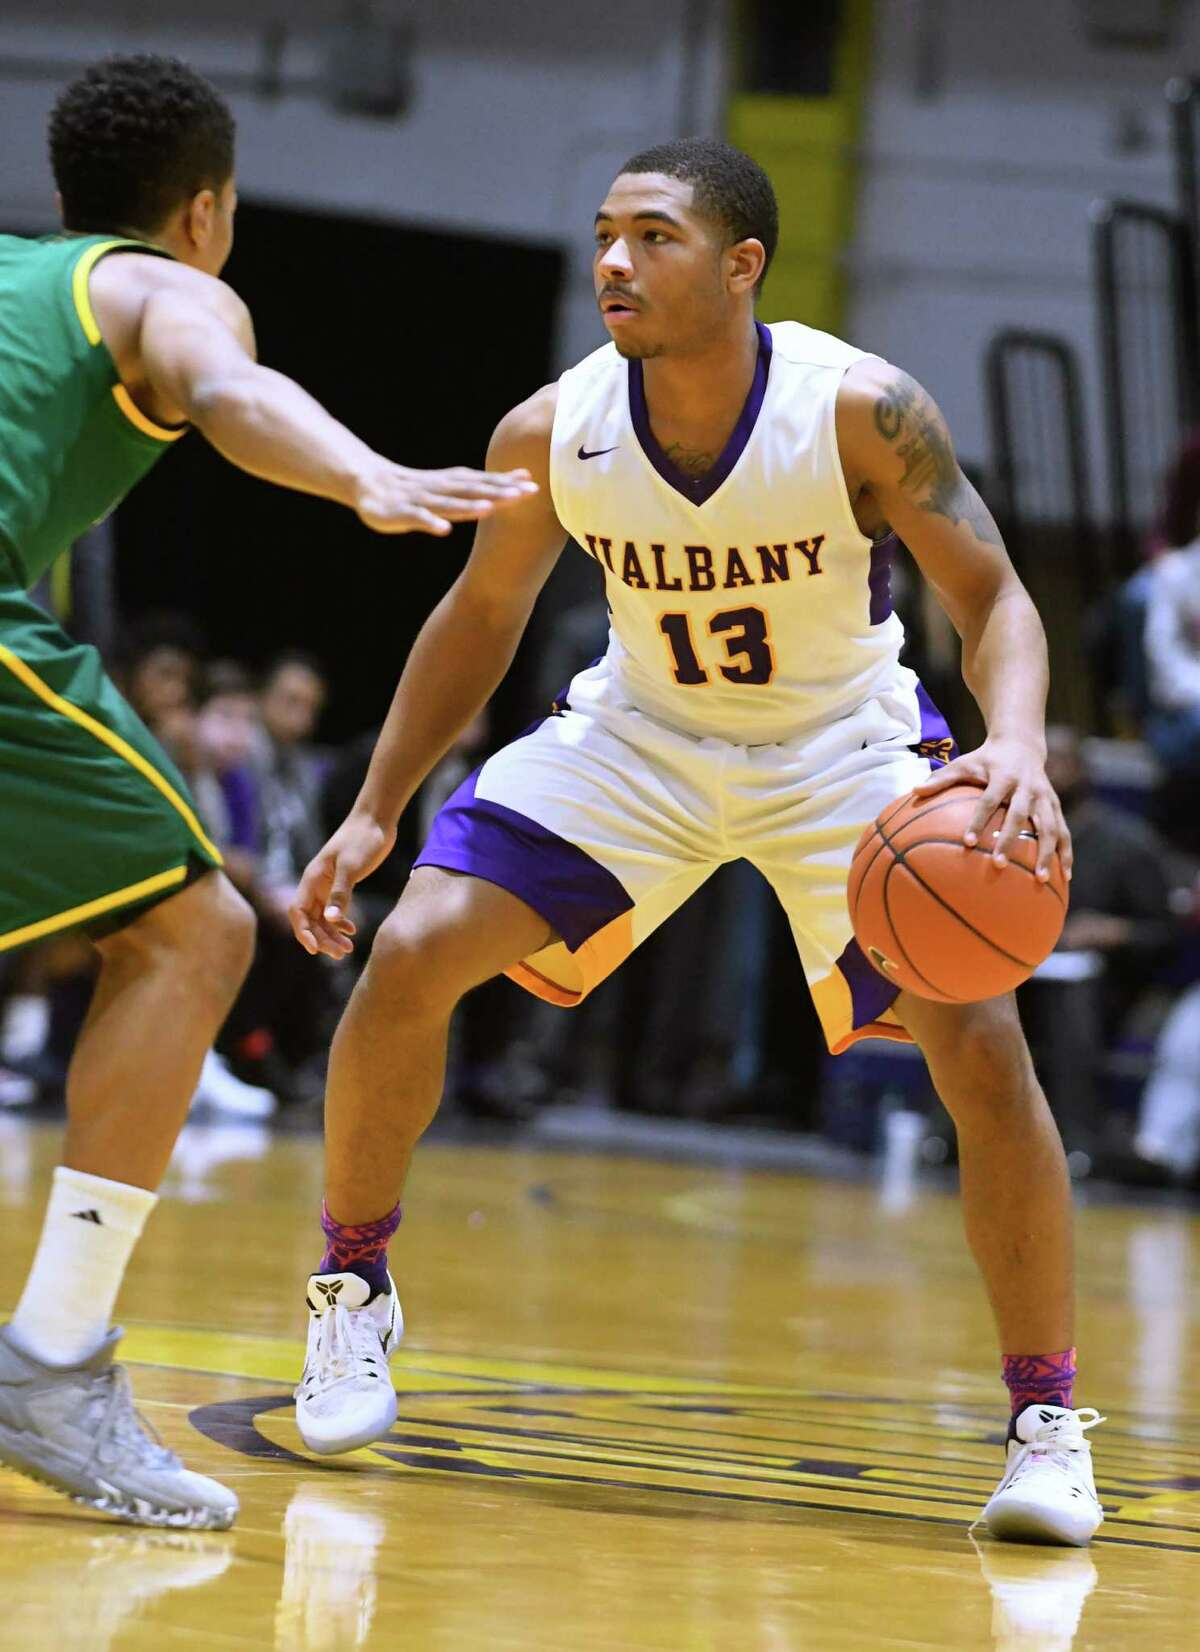 University at Albany's David Nichols brings the ball up the court during a basketball game against Vermont at the SEFCU Arena on Wednesday, Jan. 25, 2017 in Albany, N.Y. (Lori Van Buren / Times Union)